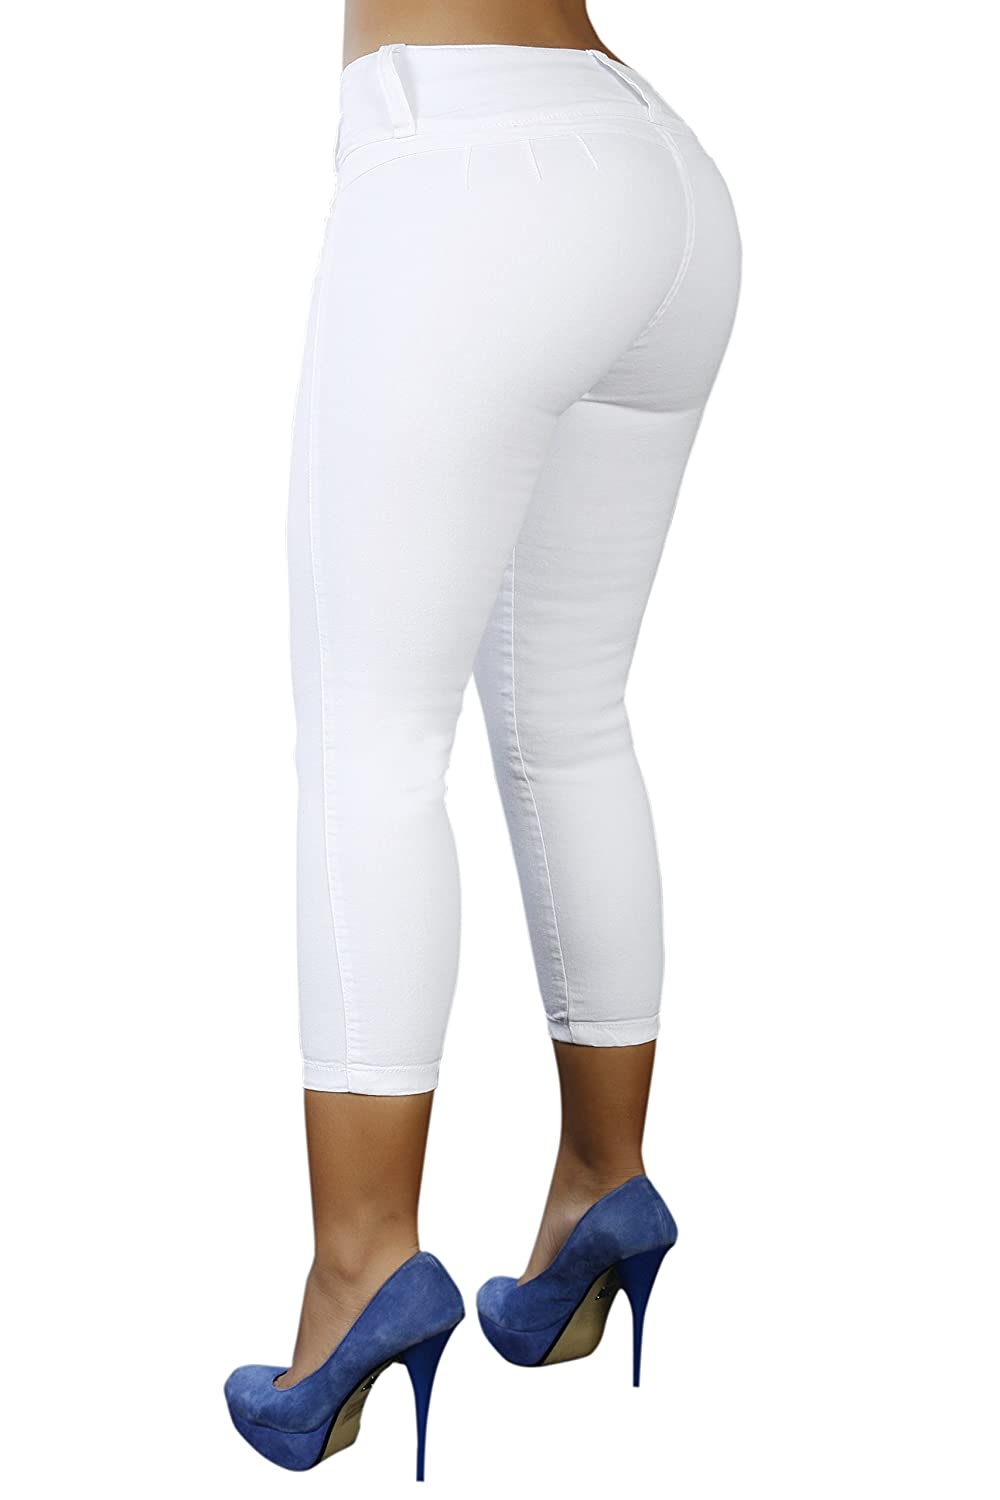 Cropwhite Curvify 764 Women's ButtLifting Skinny Jeans   HighRise Waist, Brazilian Style